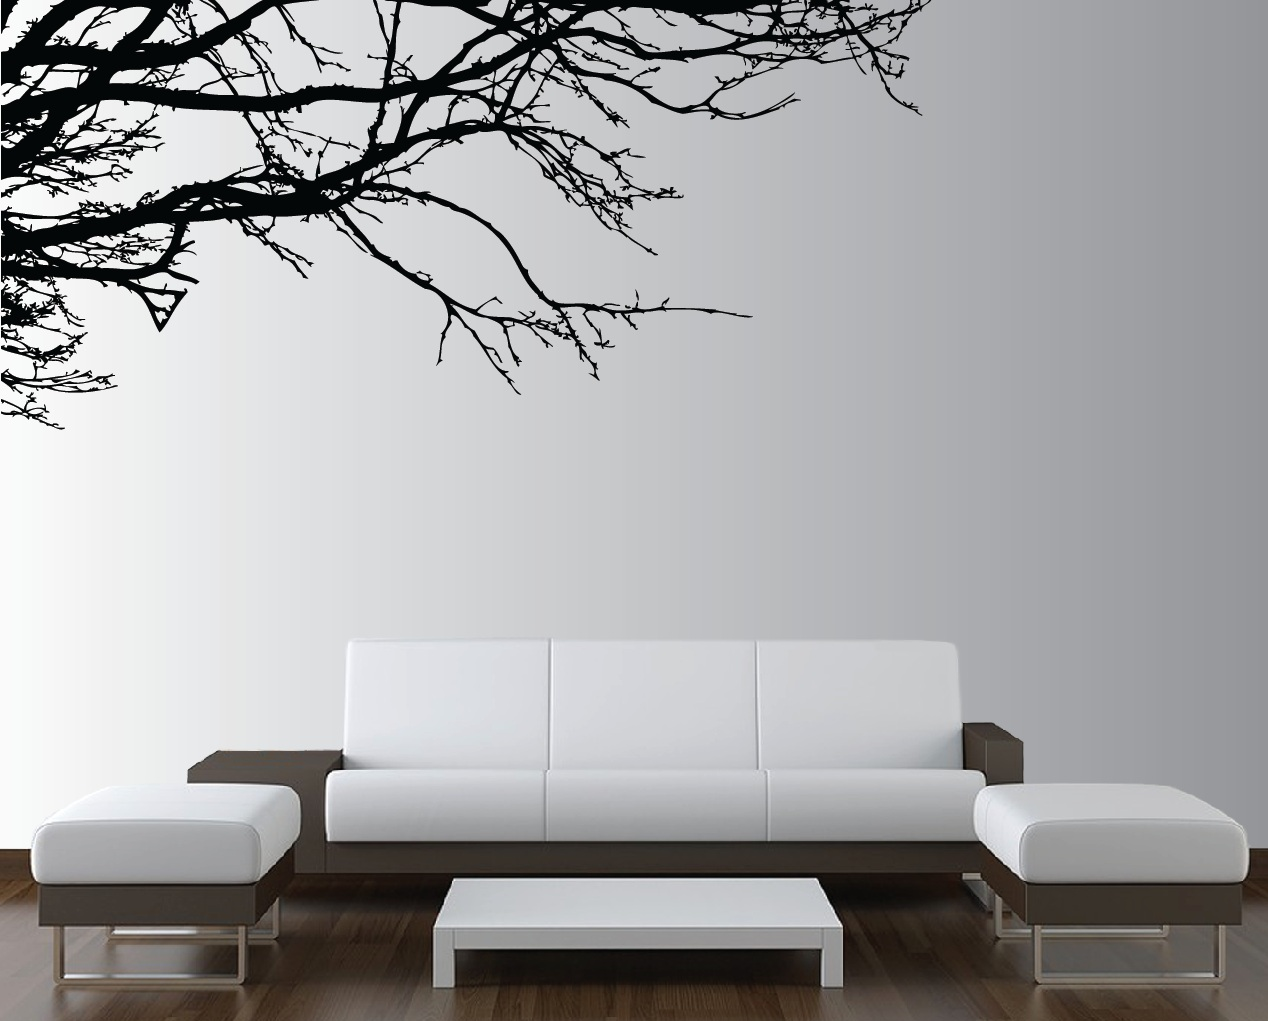 Large wall tree nursery decal oak branches 1130 - Wall sticker ideas for living room ...